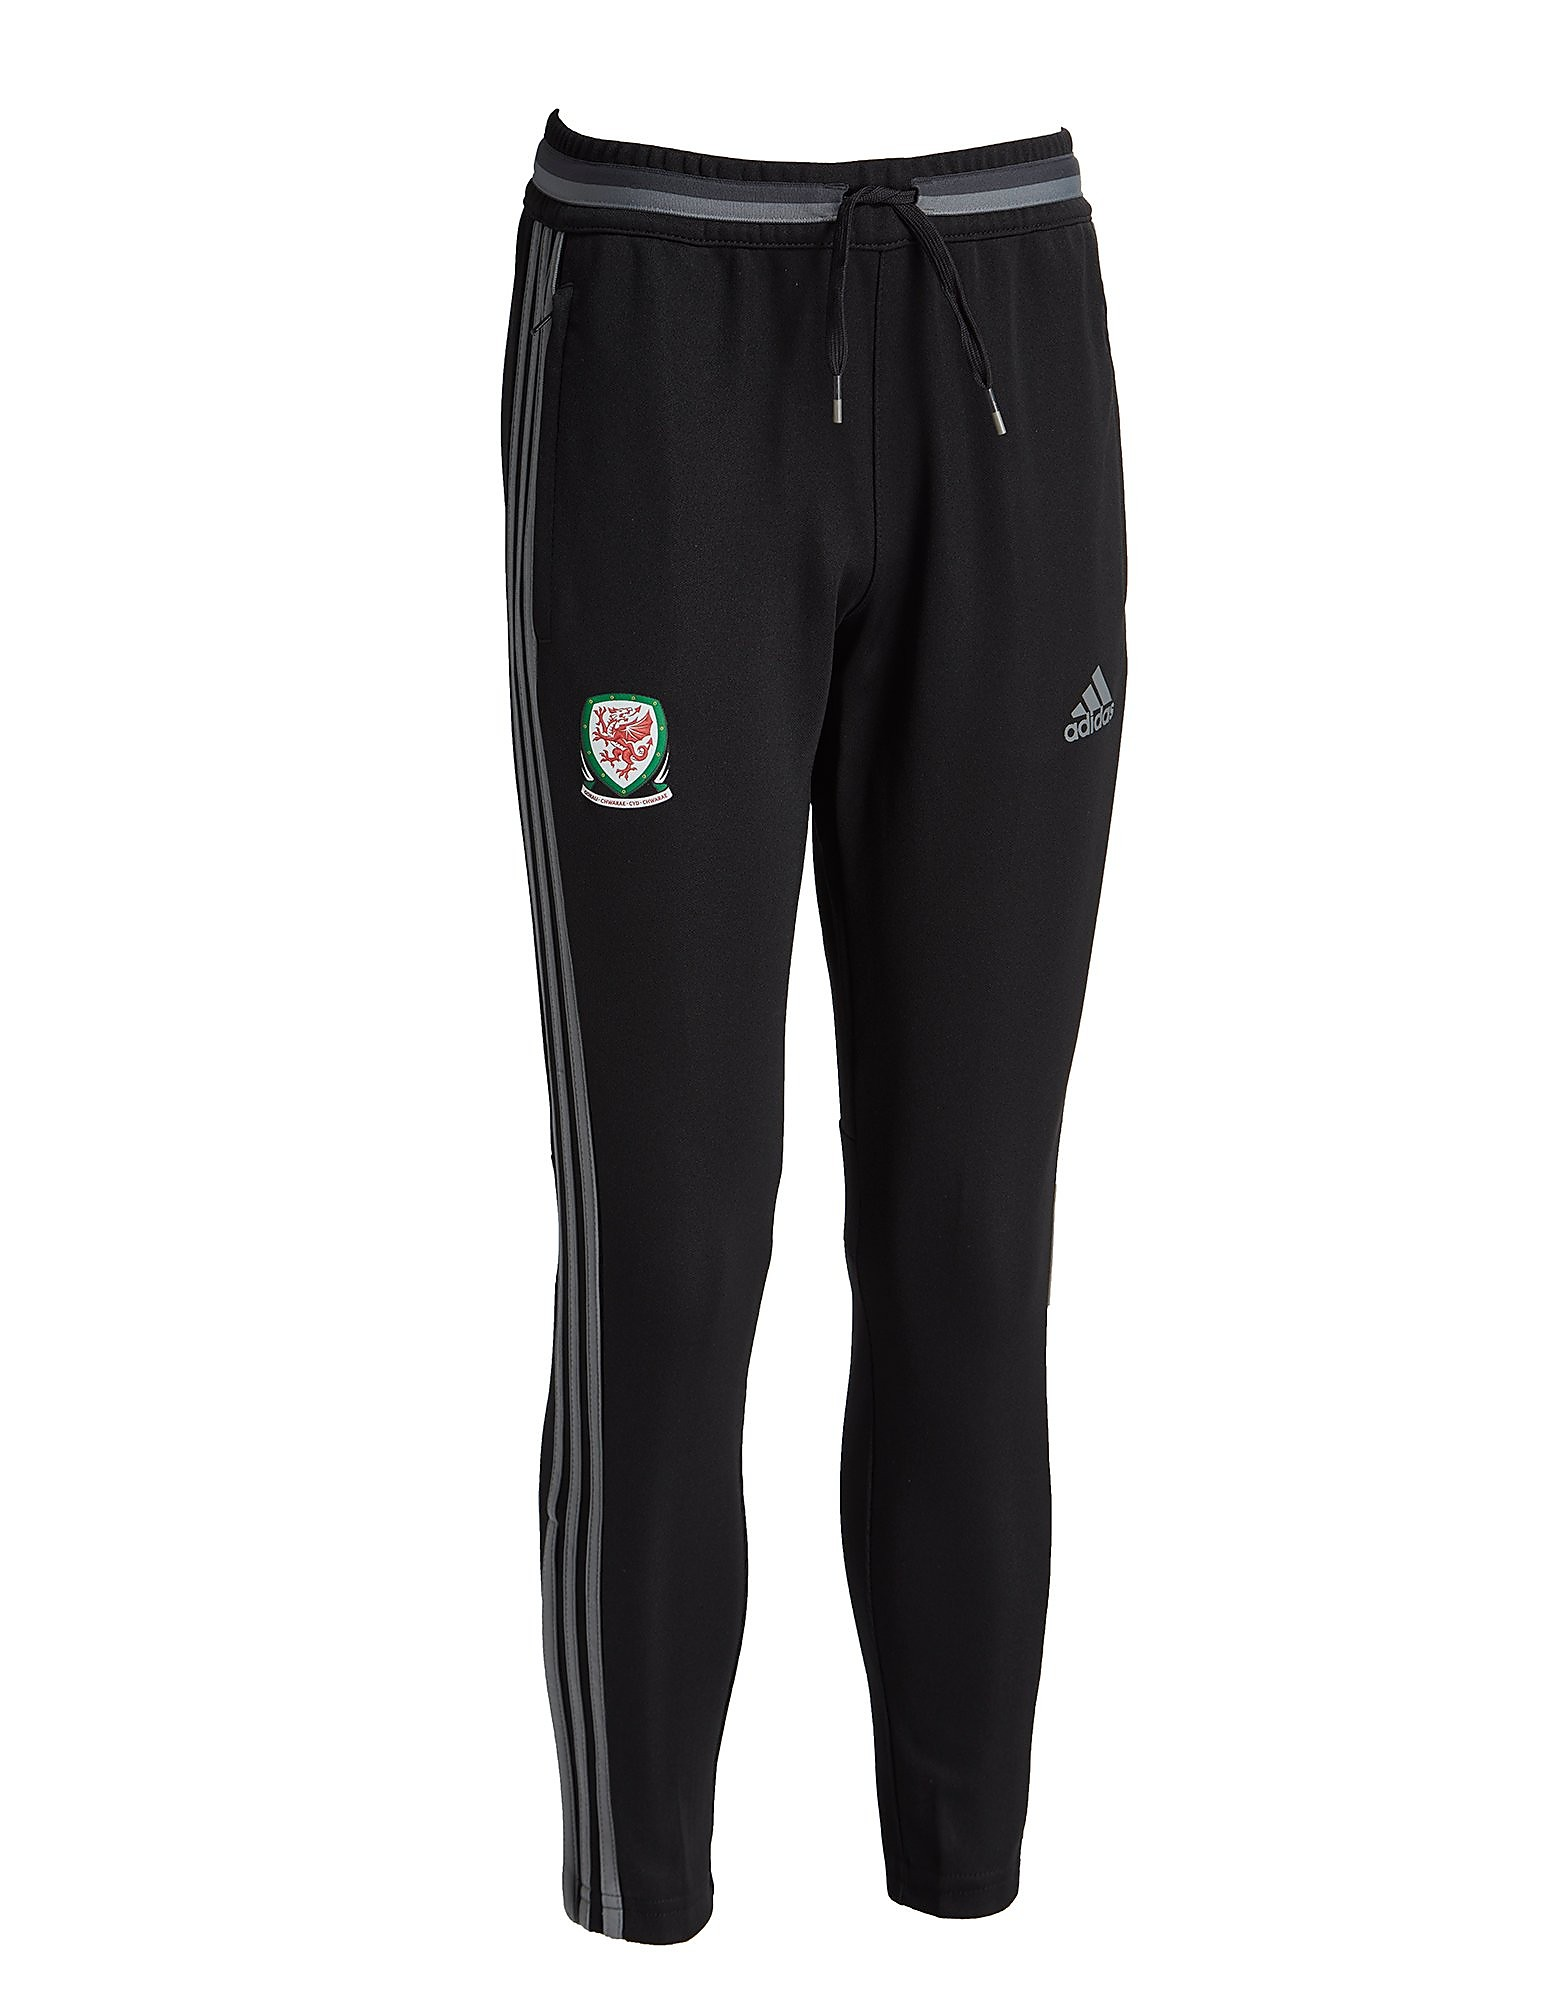 adidas Wales 2016/17 Training Pants Junior